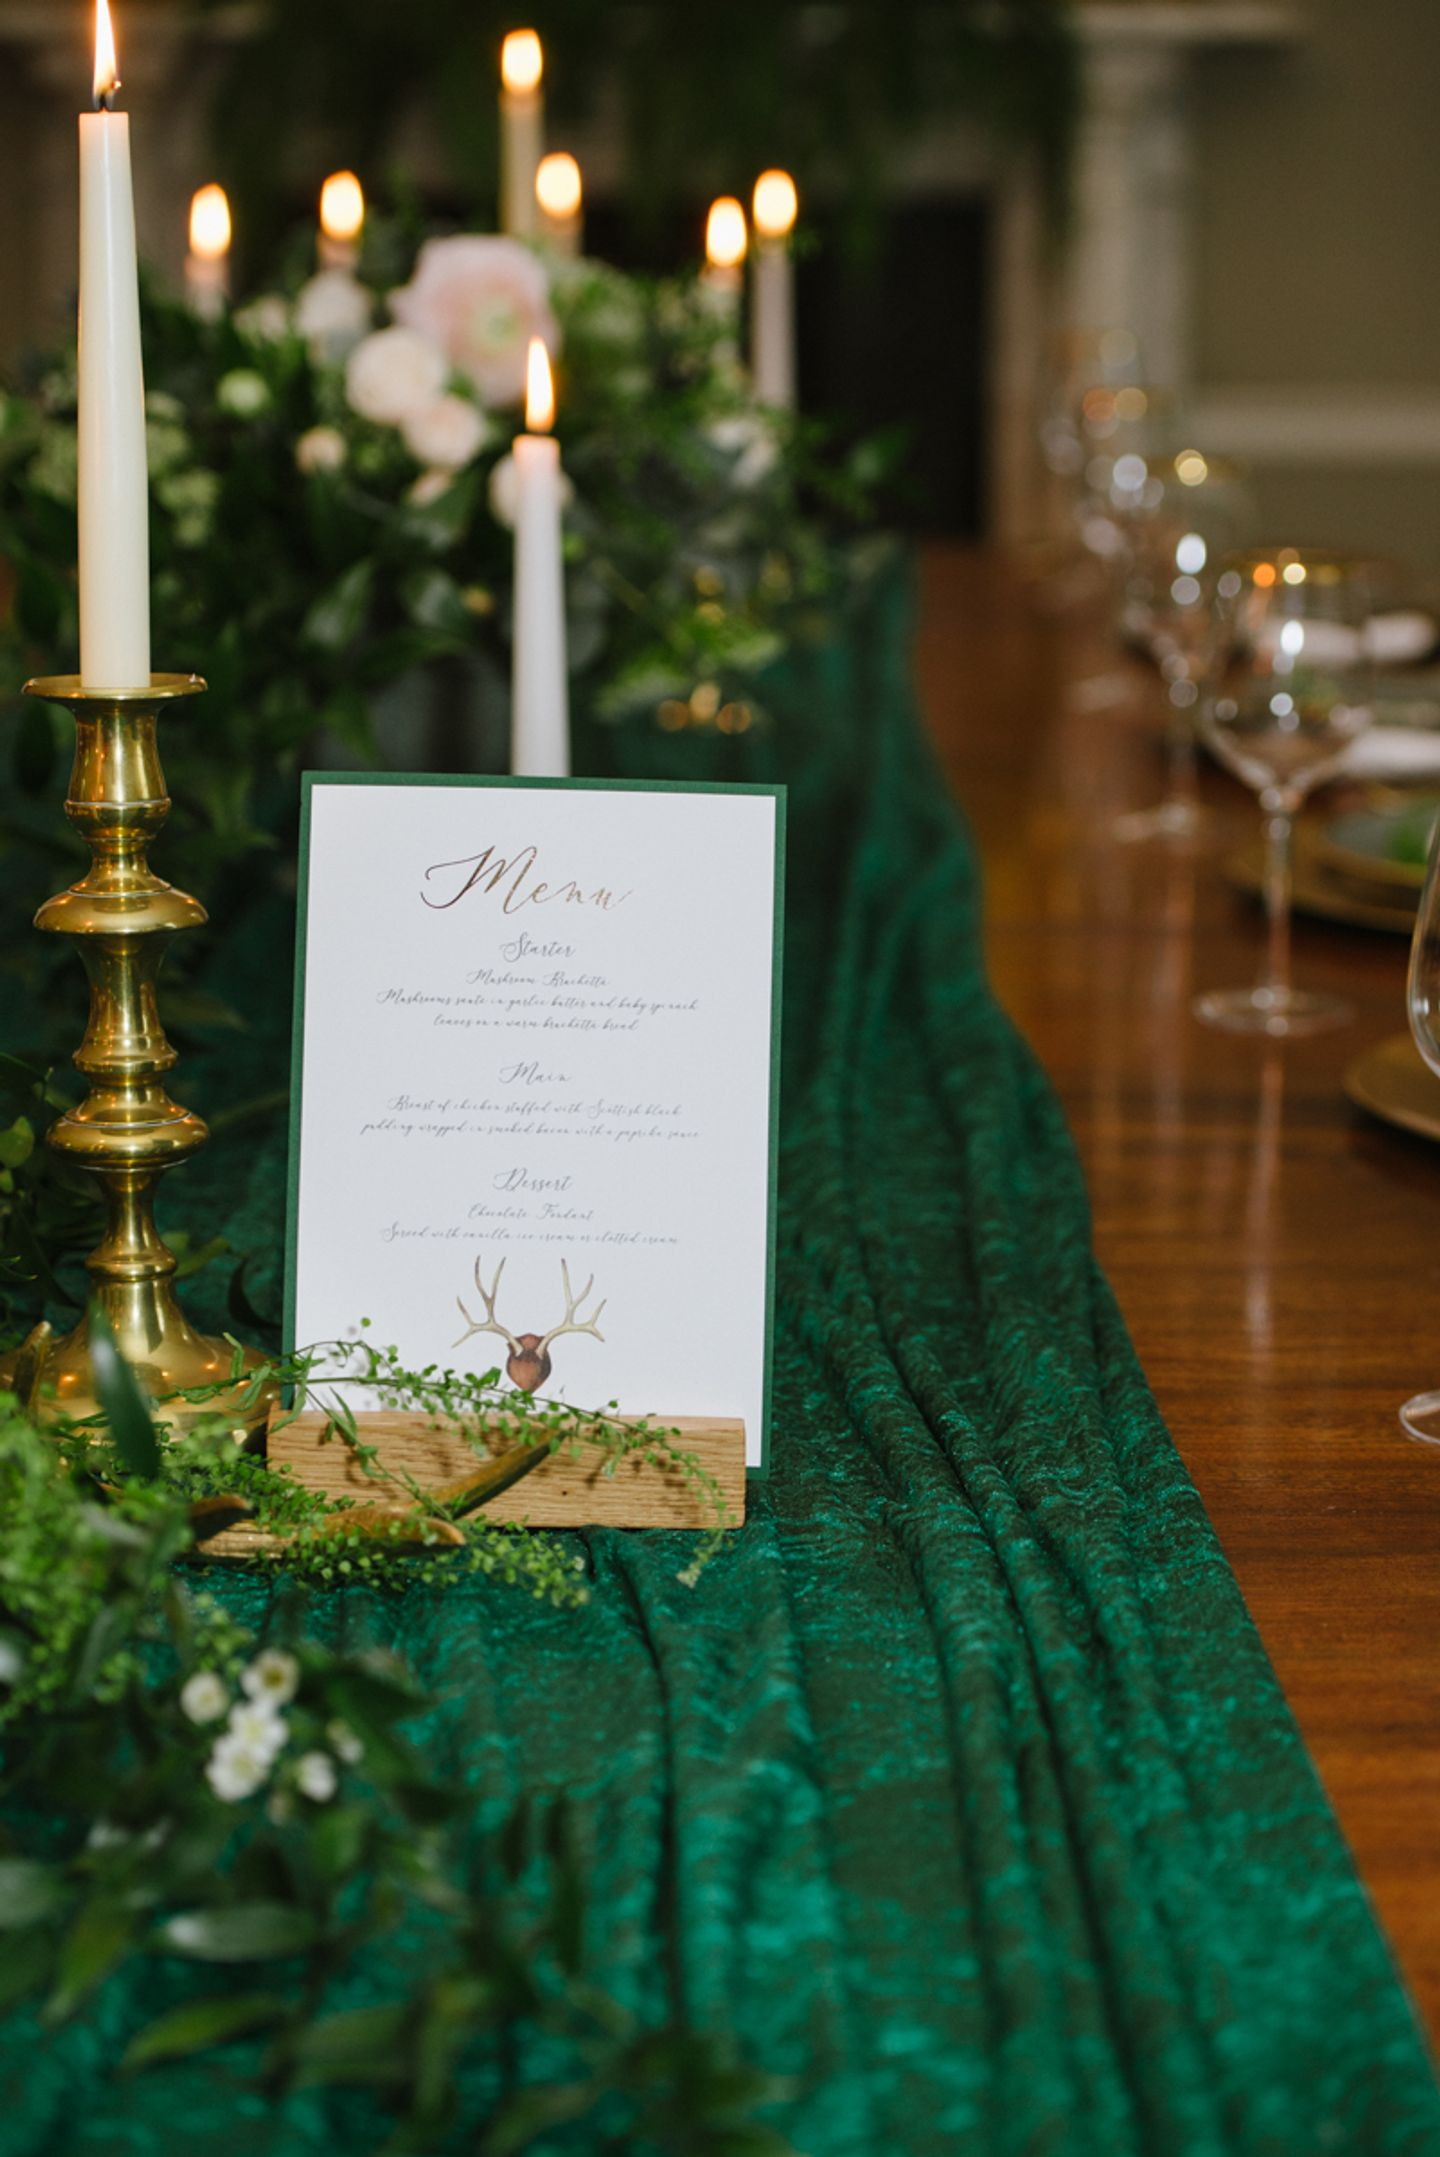 Country House candle lit dinner menu